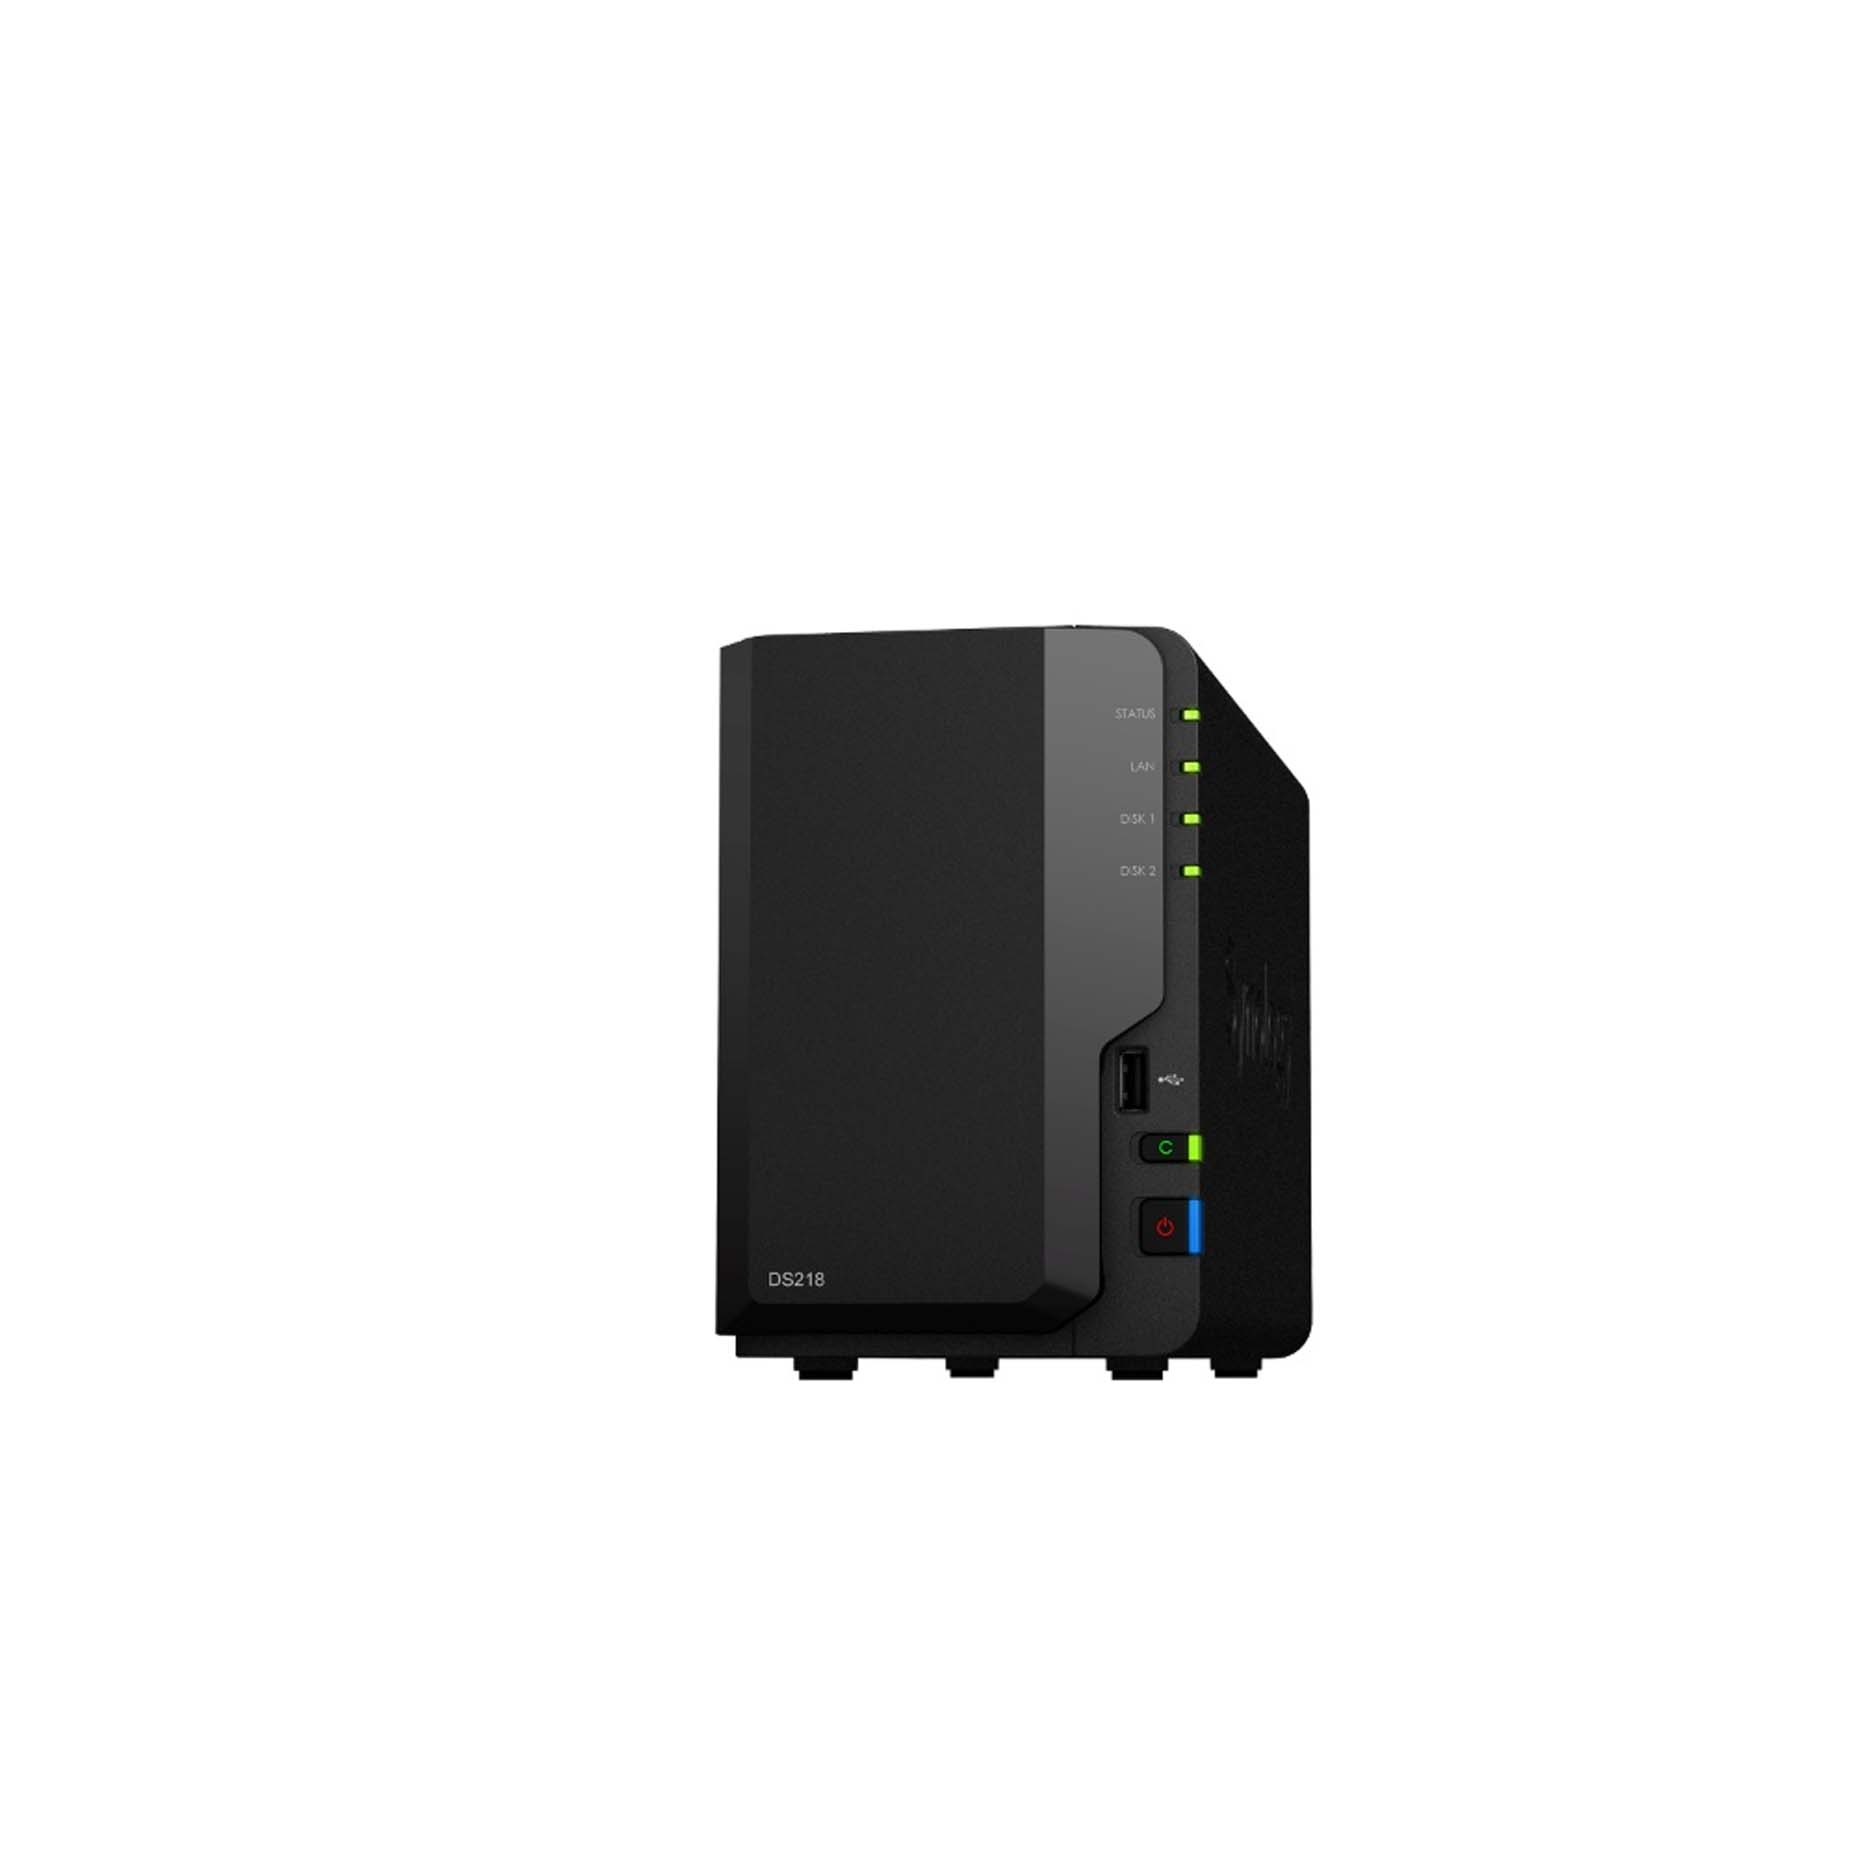 Harga Jual Synology DiskStation DS218 2-bay NAS Storage